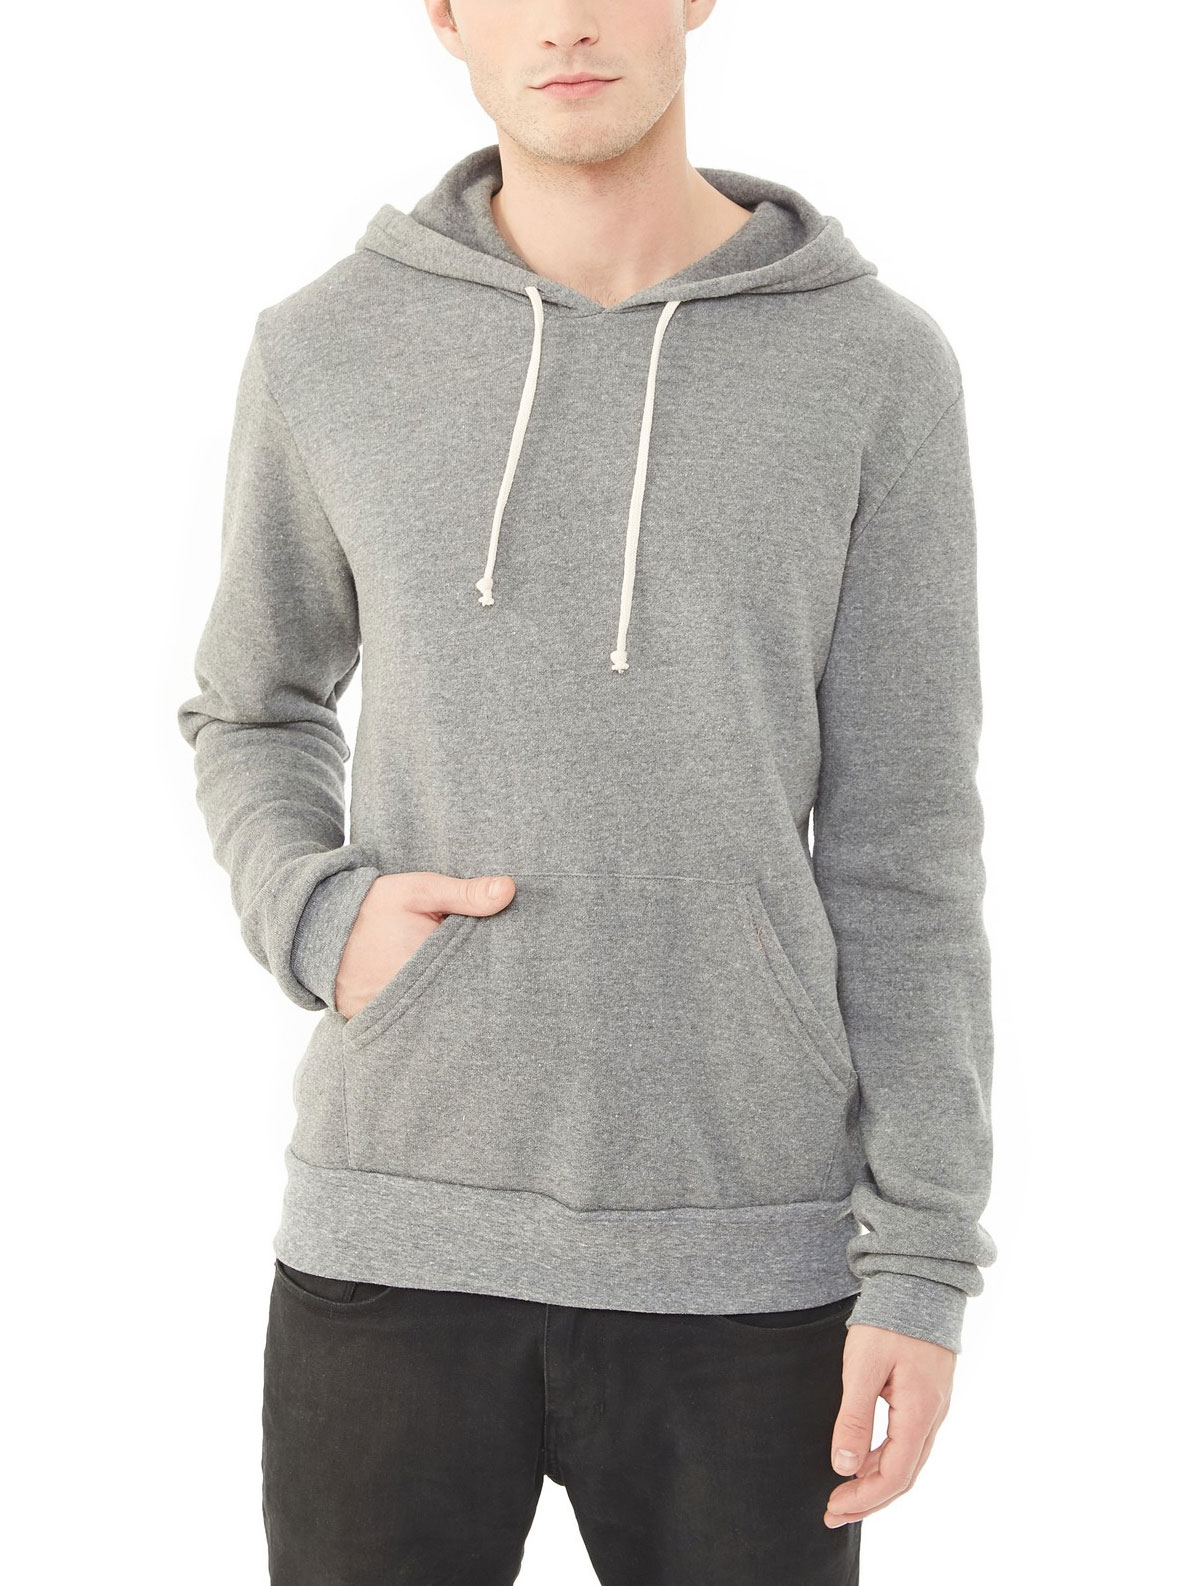 Hoodie 3 | Plus Size Apparel, Plus Size Clothing | Perfectly ...